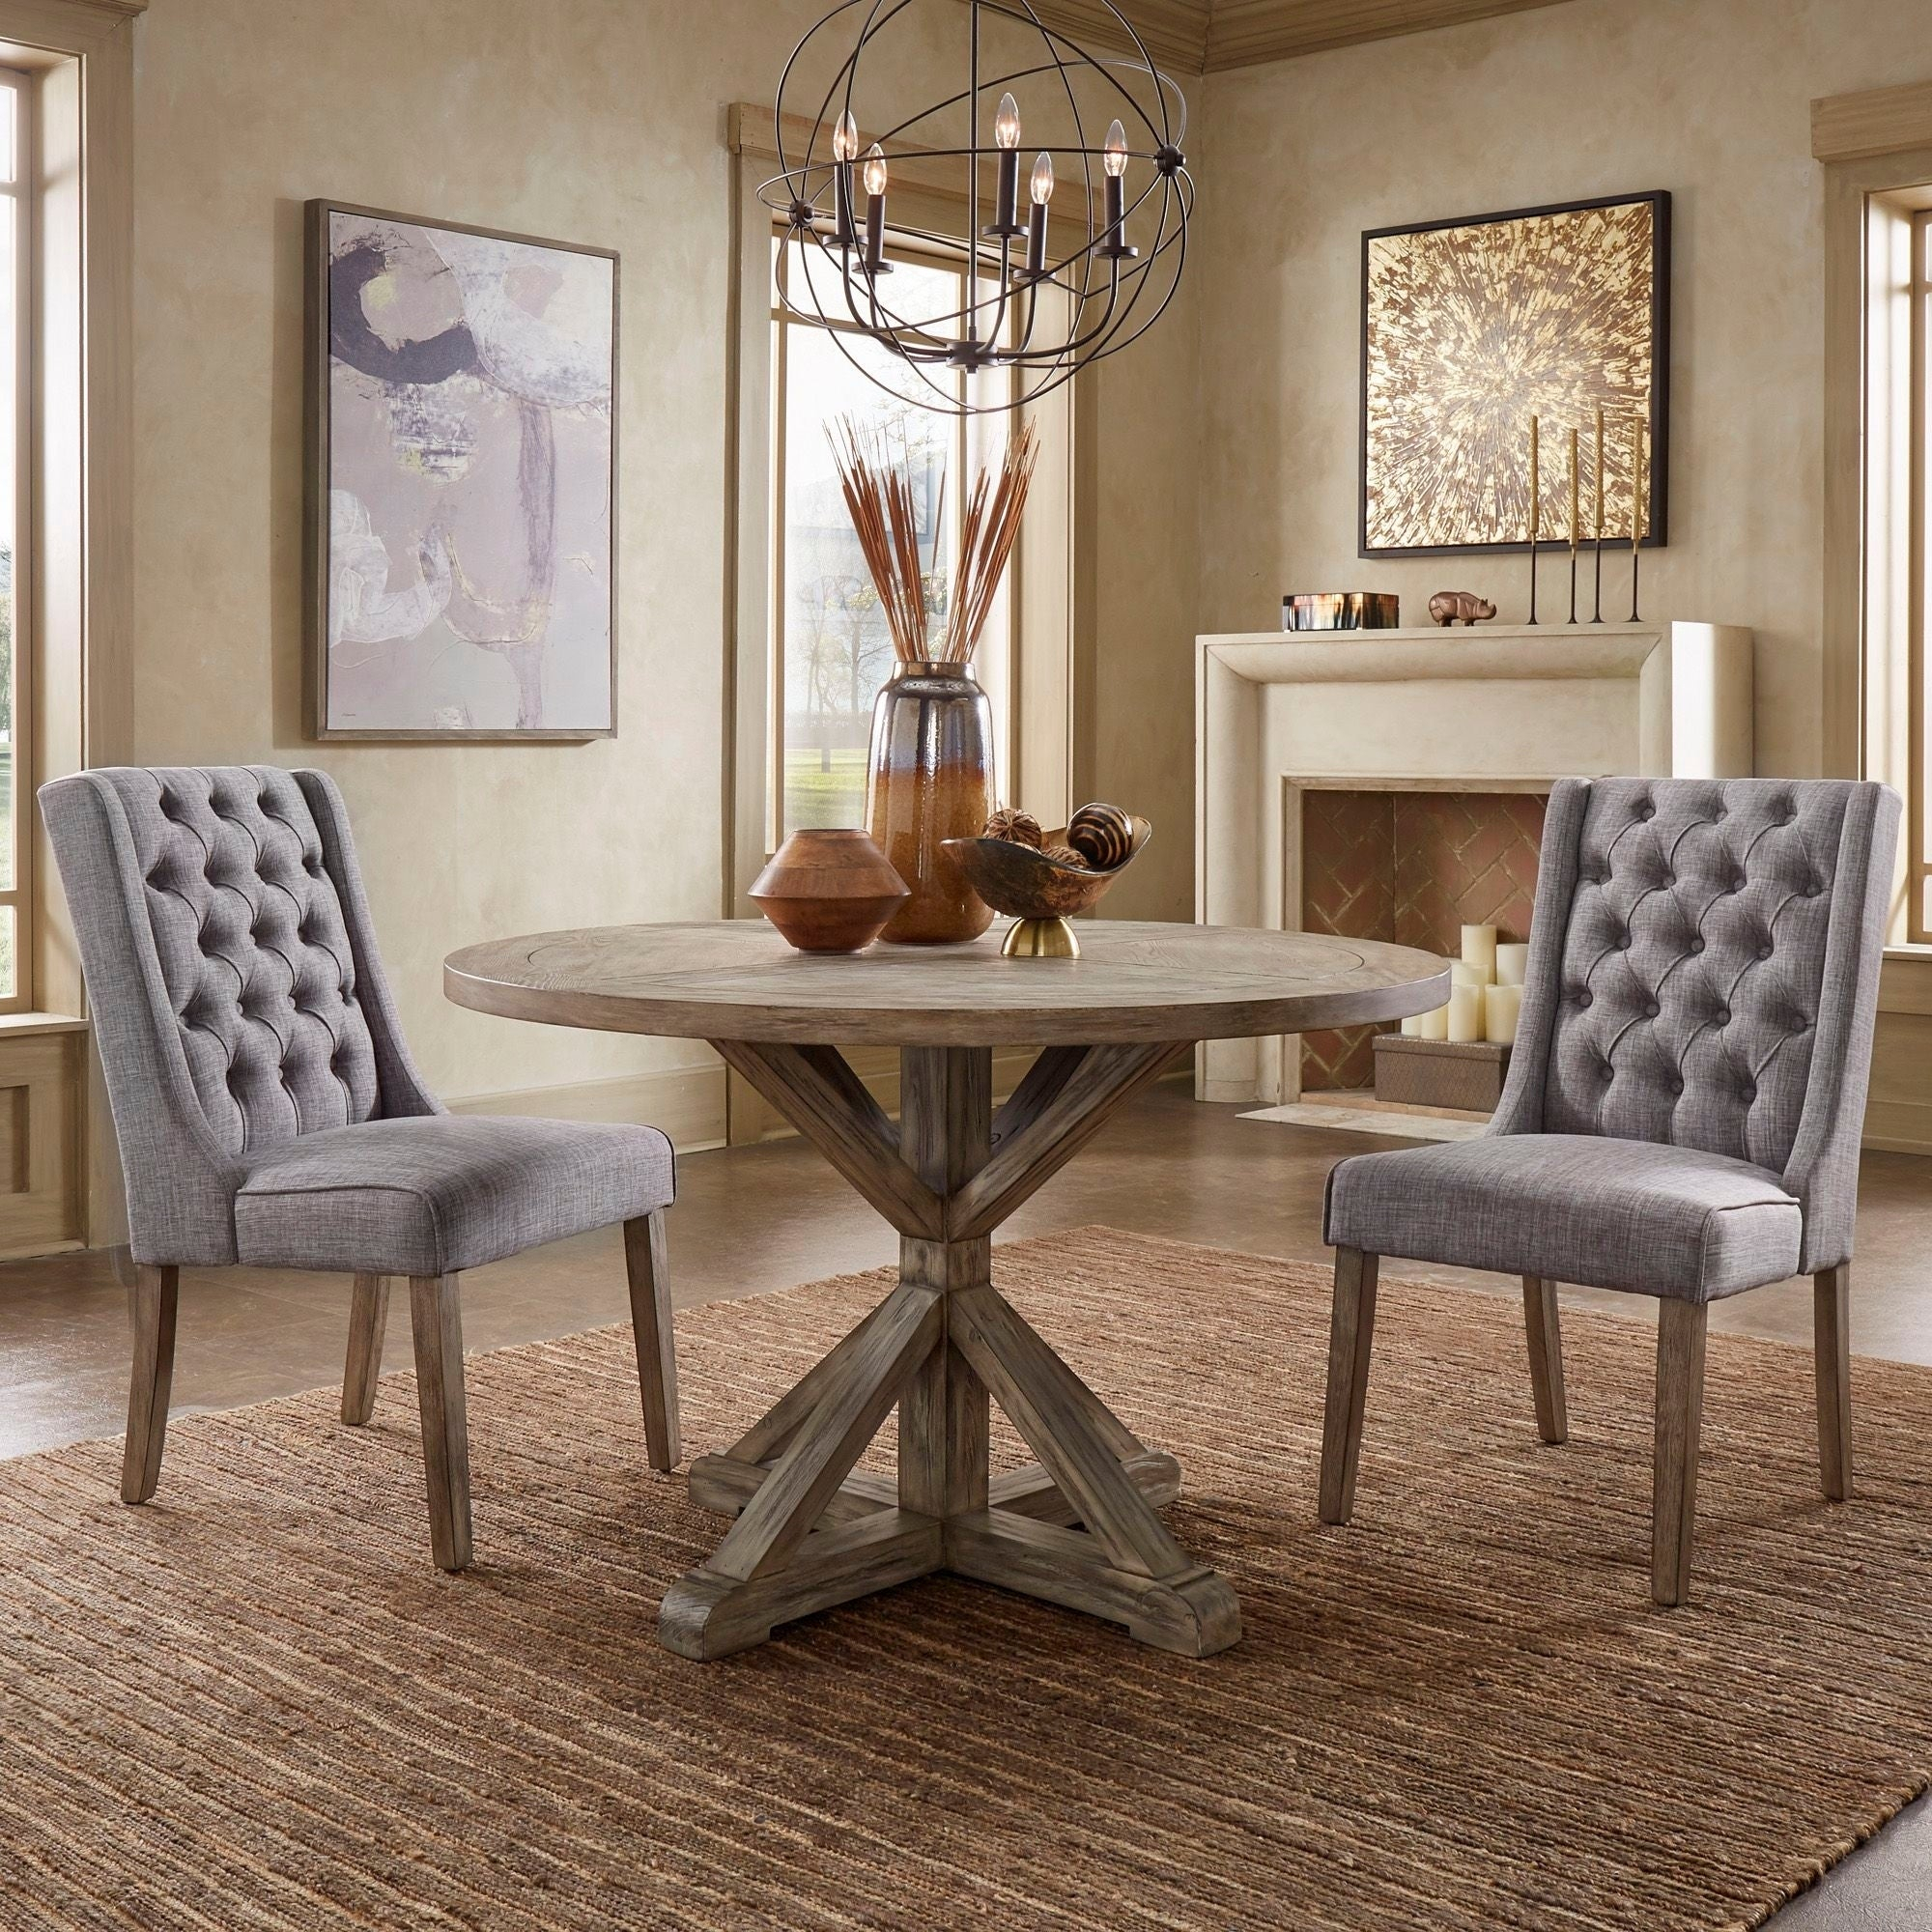 Benchwright Antique Grey Oak Round Dining Tableinspire Q Artisan Pertaining To Most Popular Blackened Oak Benchwright Dining Tables (Image 5 of 25)